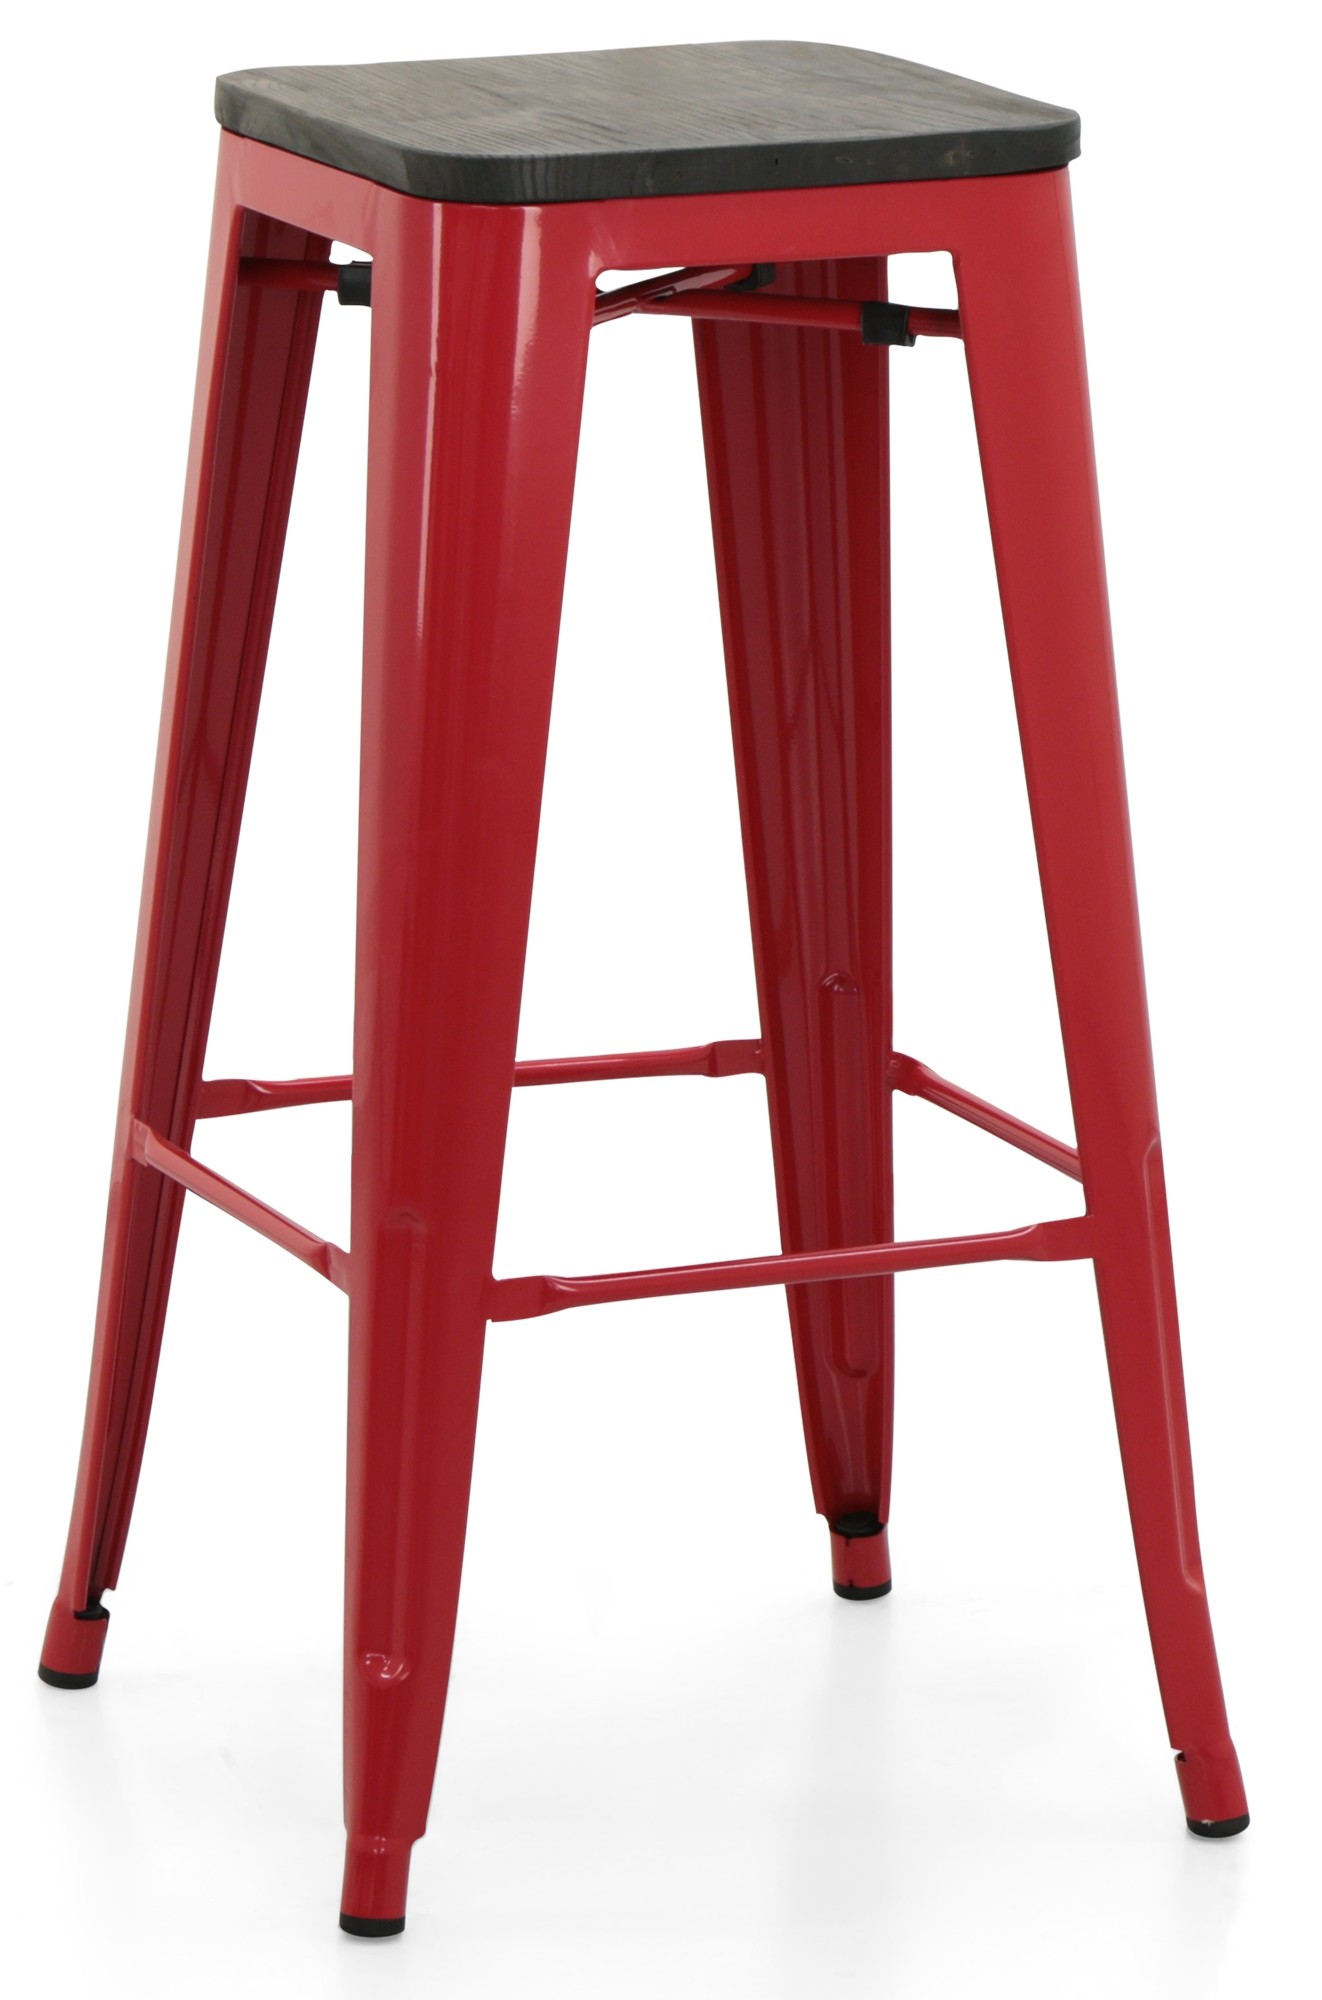 Amazing Retro Metal Bar Stool With Wooden Seat Red Pdpeps Interior Chair Design Pdpepsorg